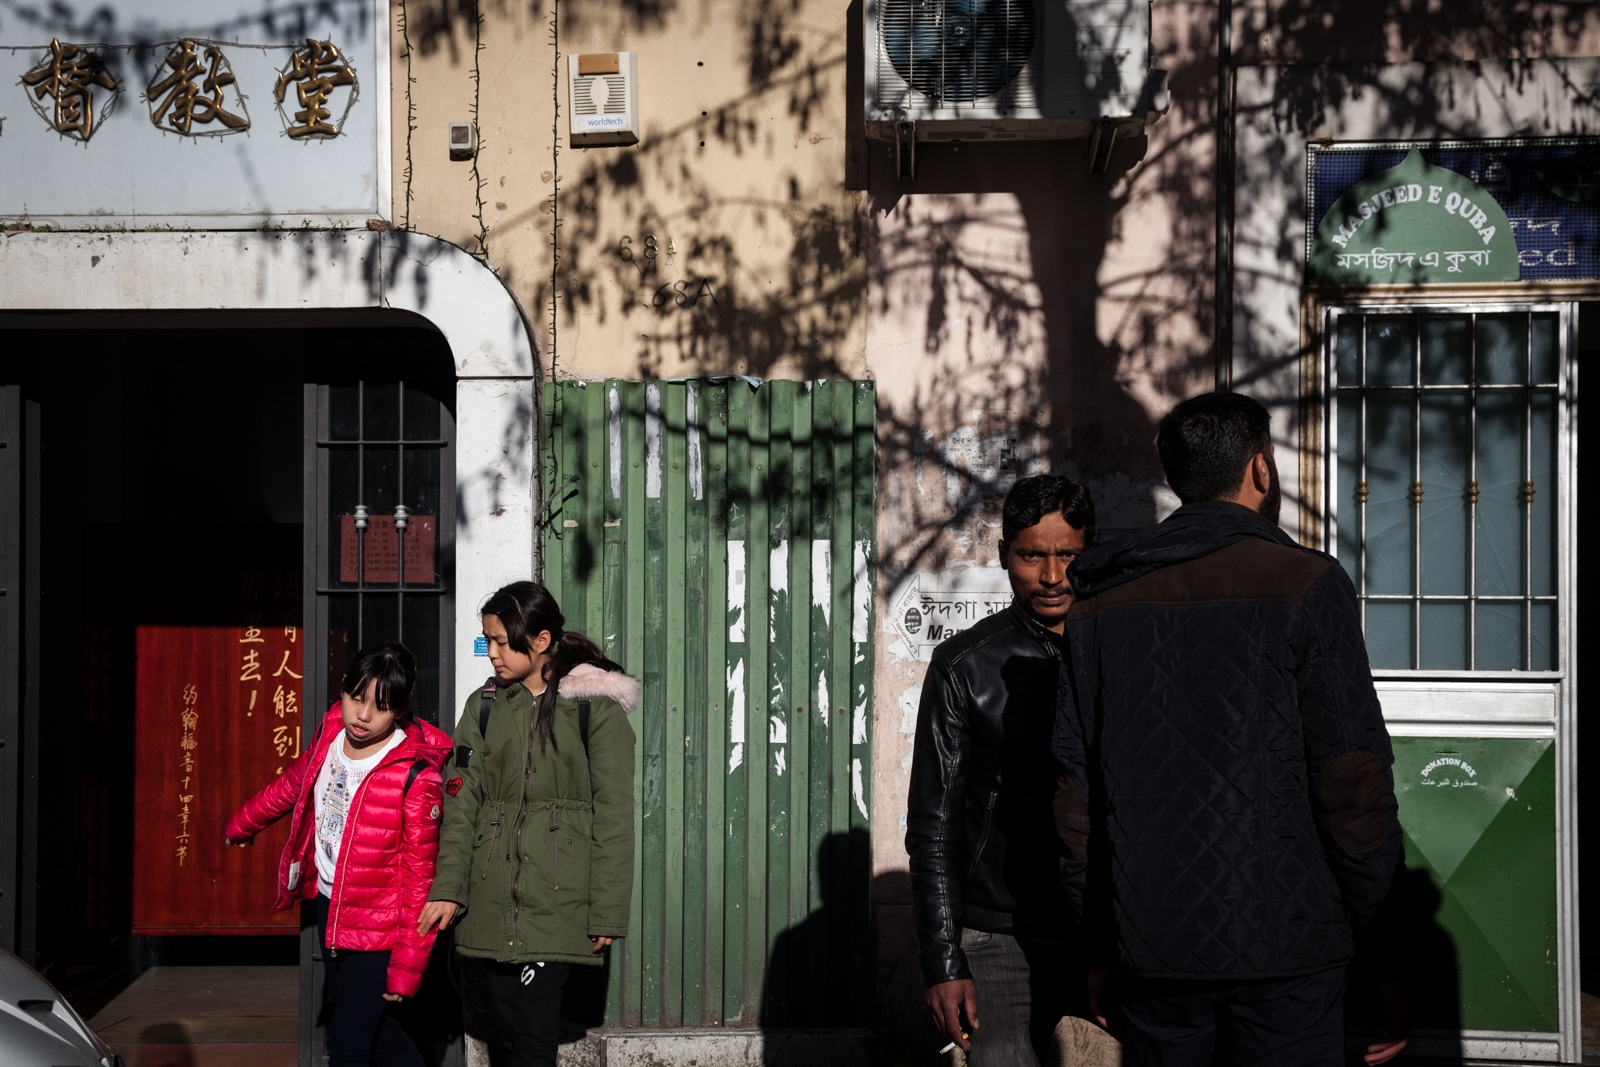 Apr. 1, 2018 - A Chinese evangelical church and a mosque keep via della Marranella busy on Sunday afternoons. We are in the multicultural southeastern neighborhood of Torpignattara where the migrations of the last 30 years have brought many different cultures and religions together.